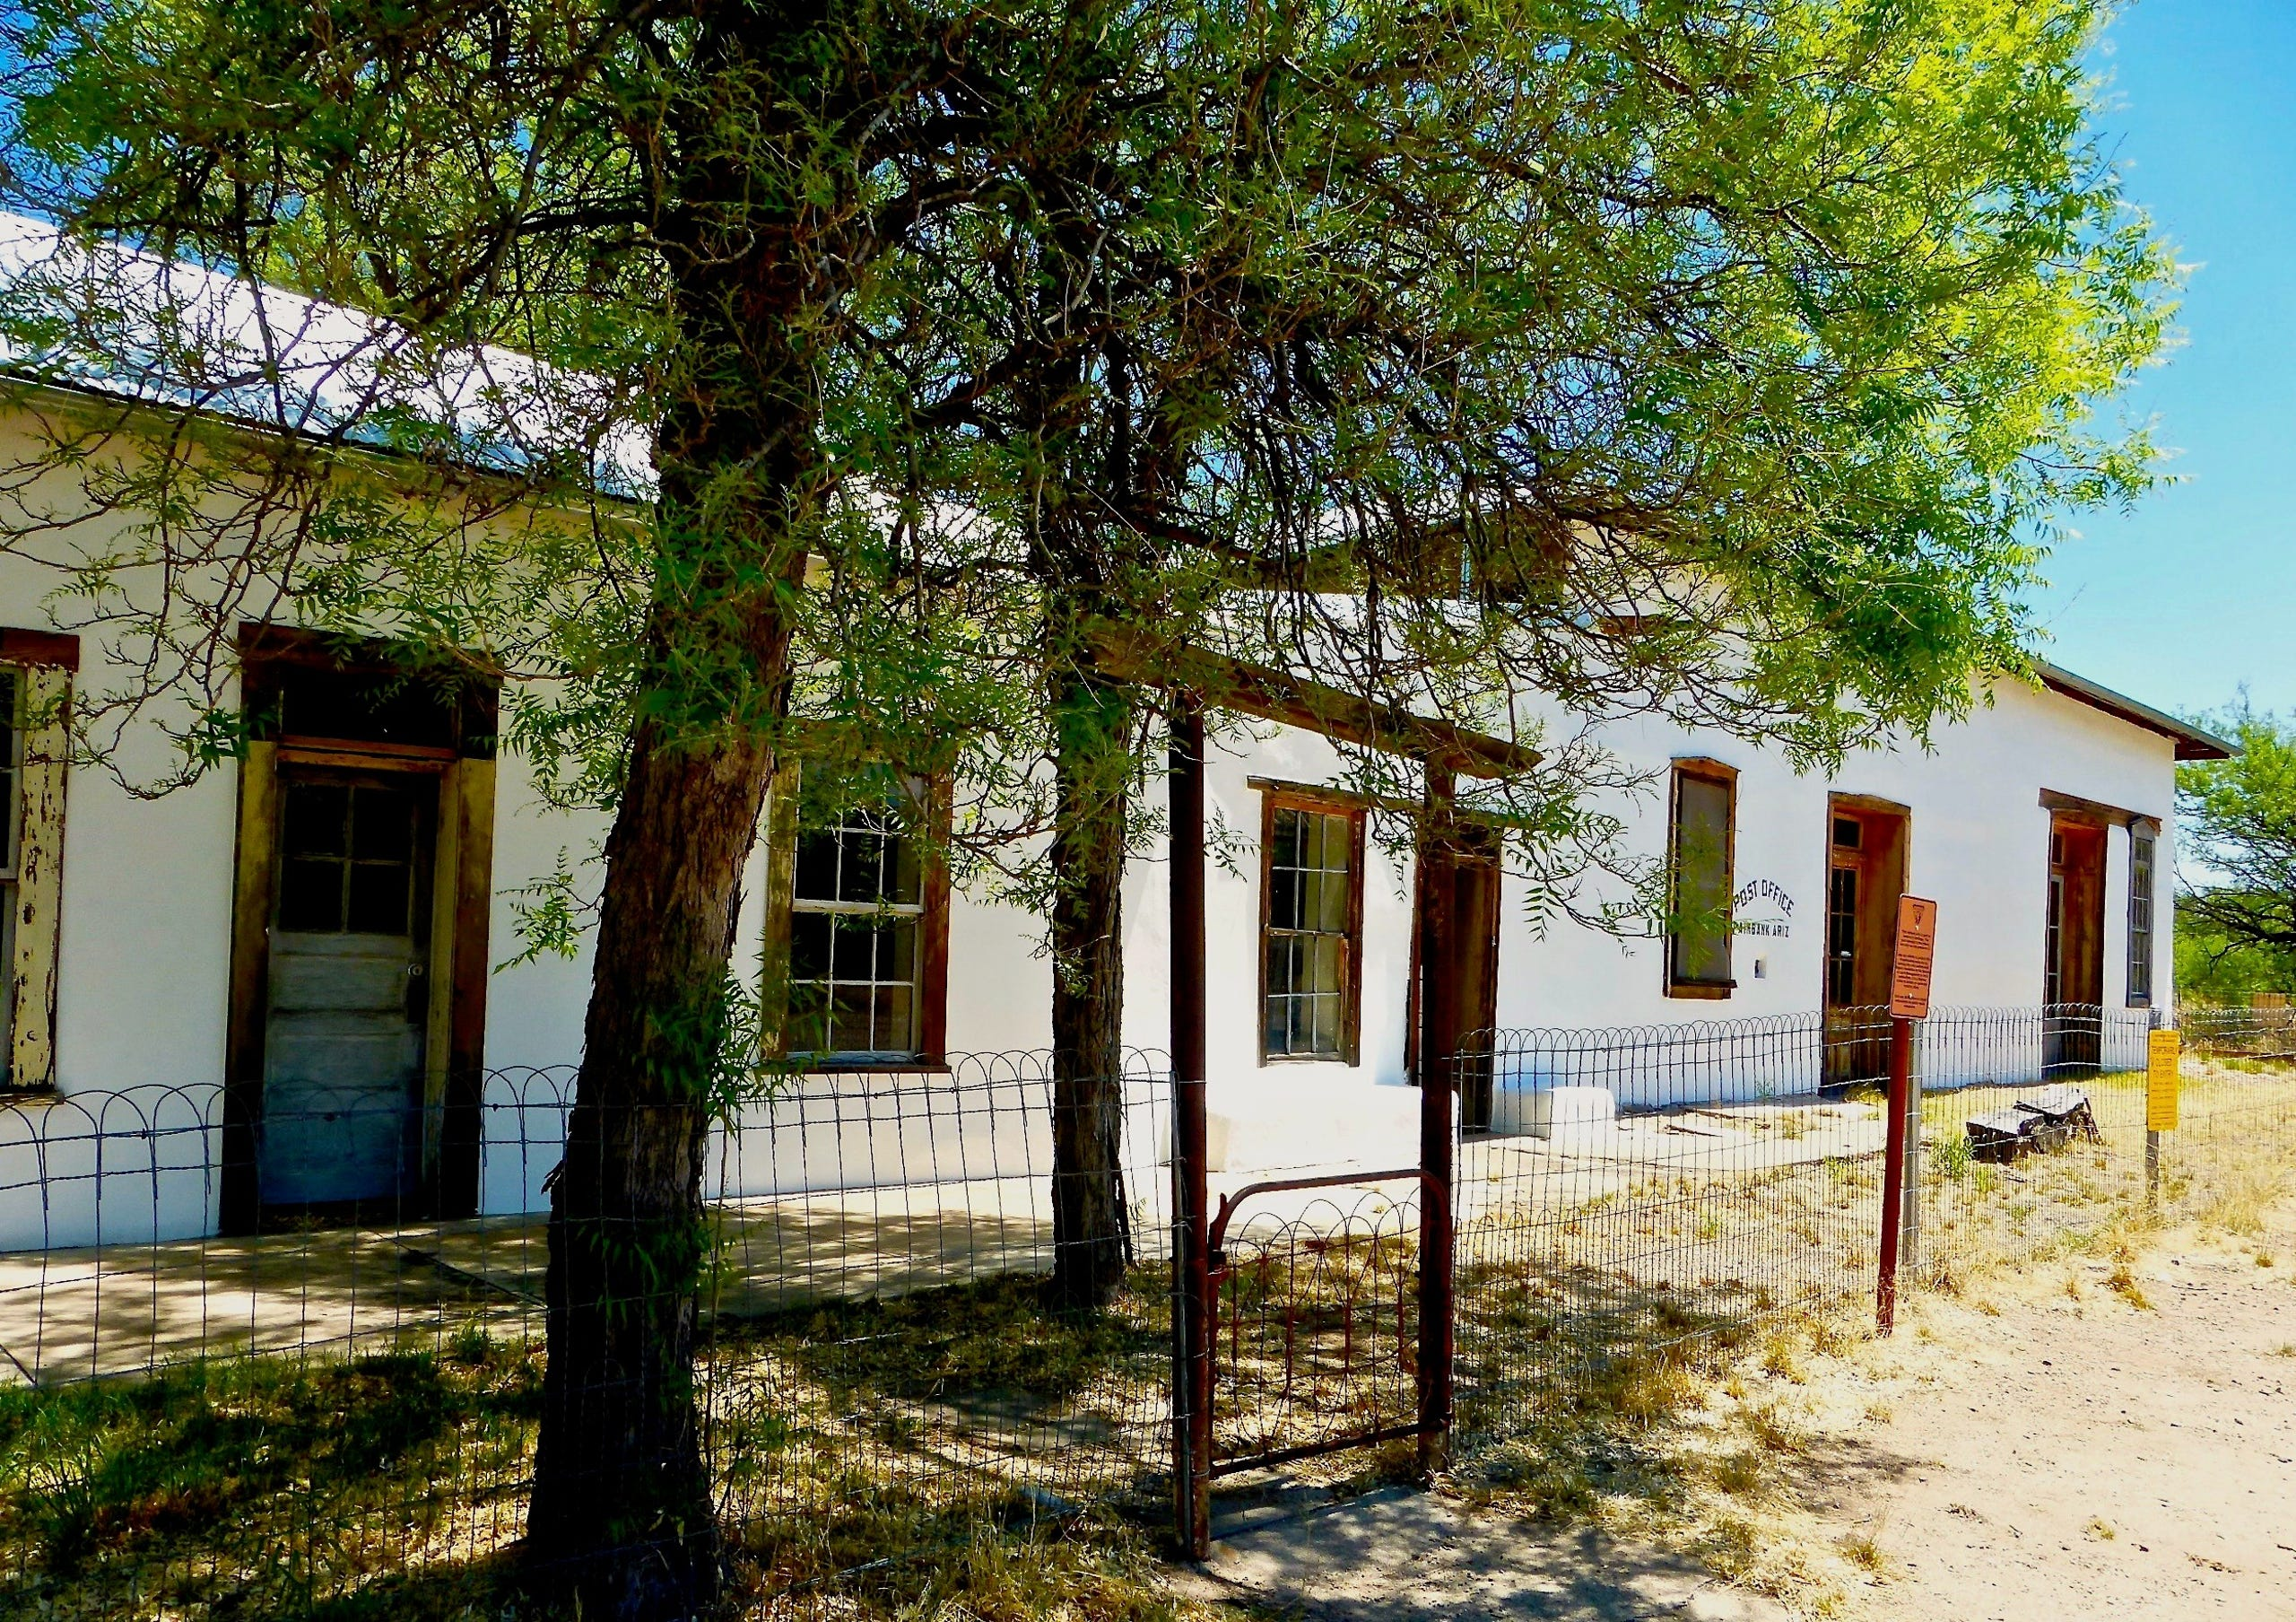 The mercantile and post office are among the structures still standing in Fairbank, Arizona.